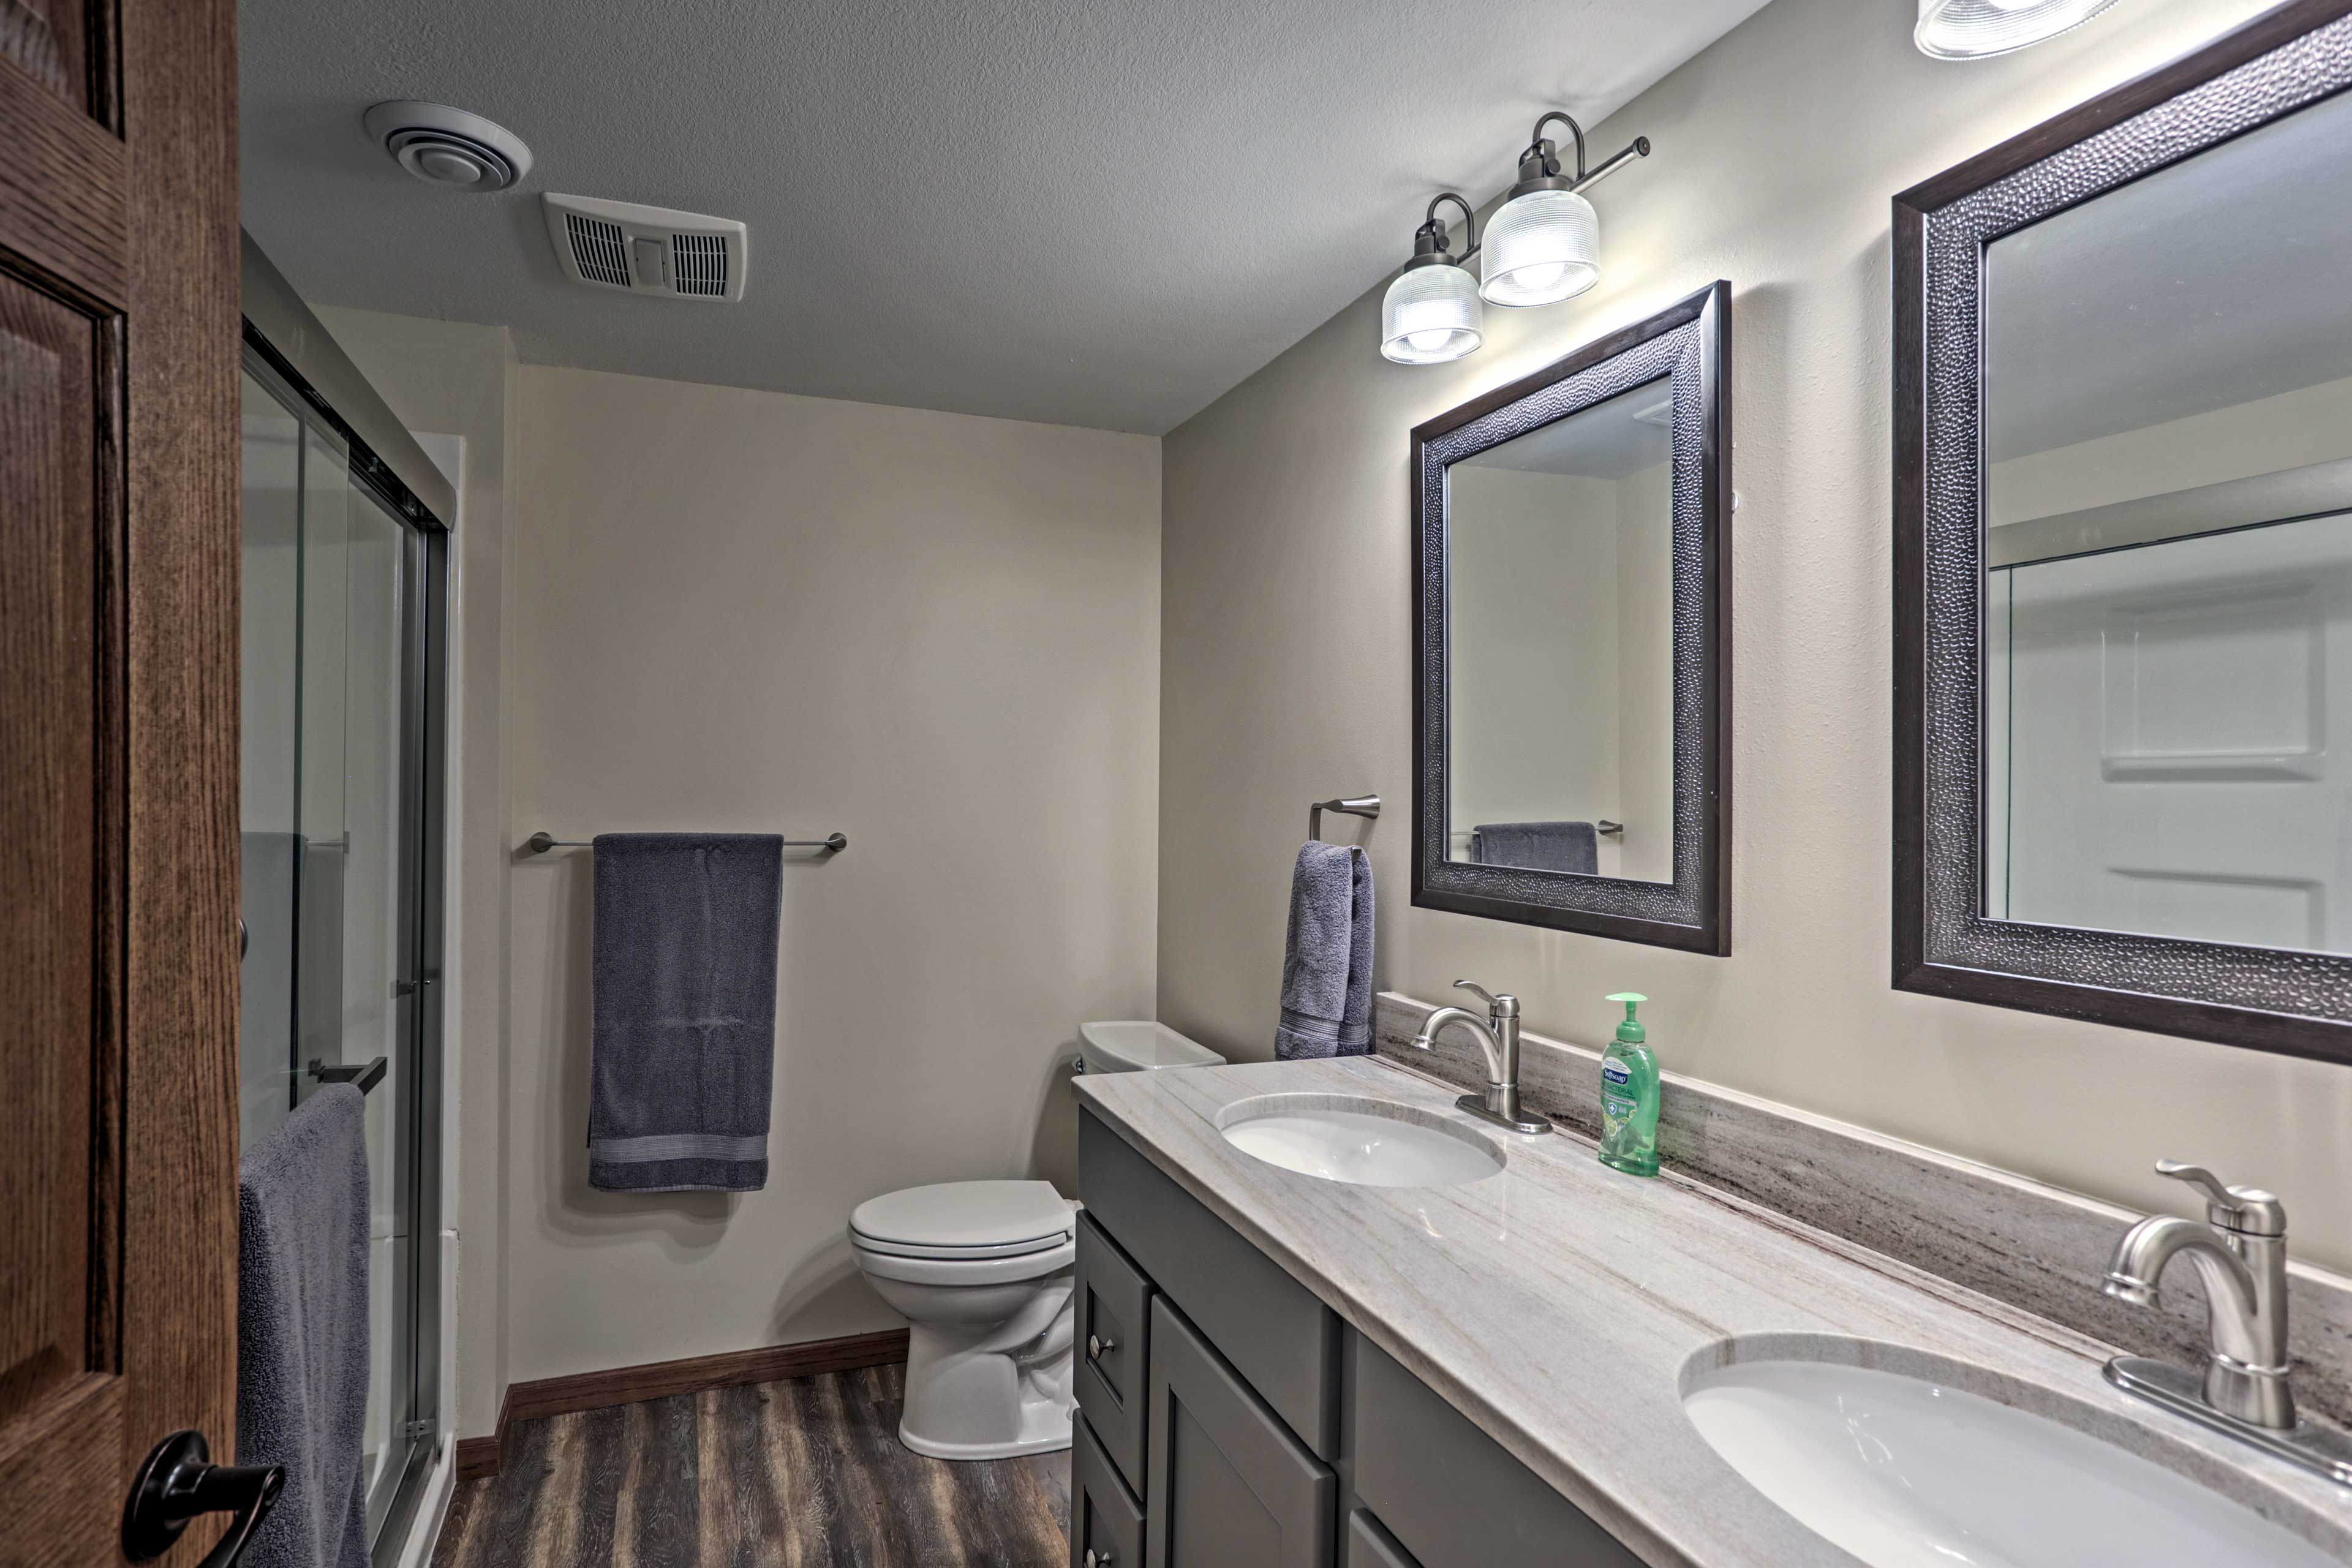 The third full bathroom features elegant double sinks and a glass shower.